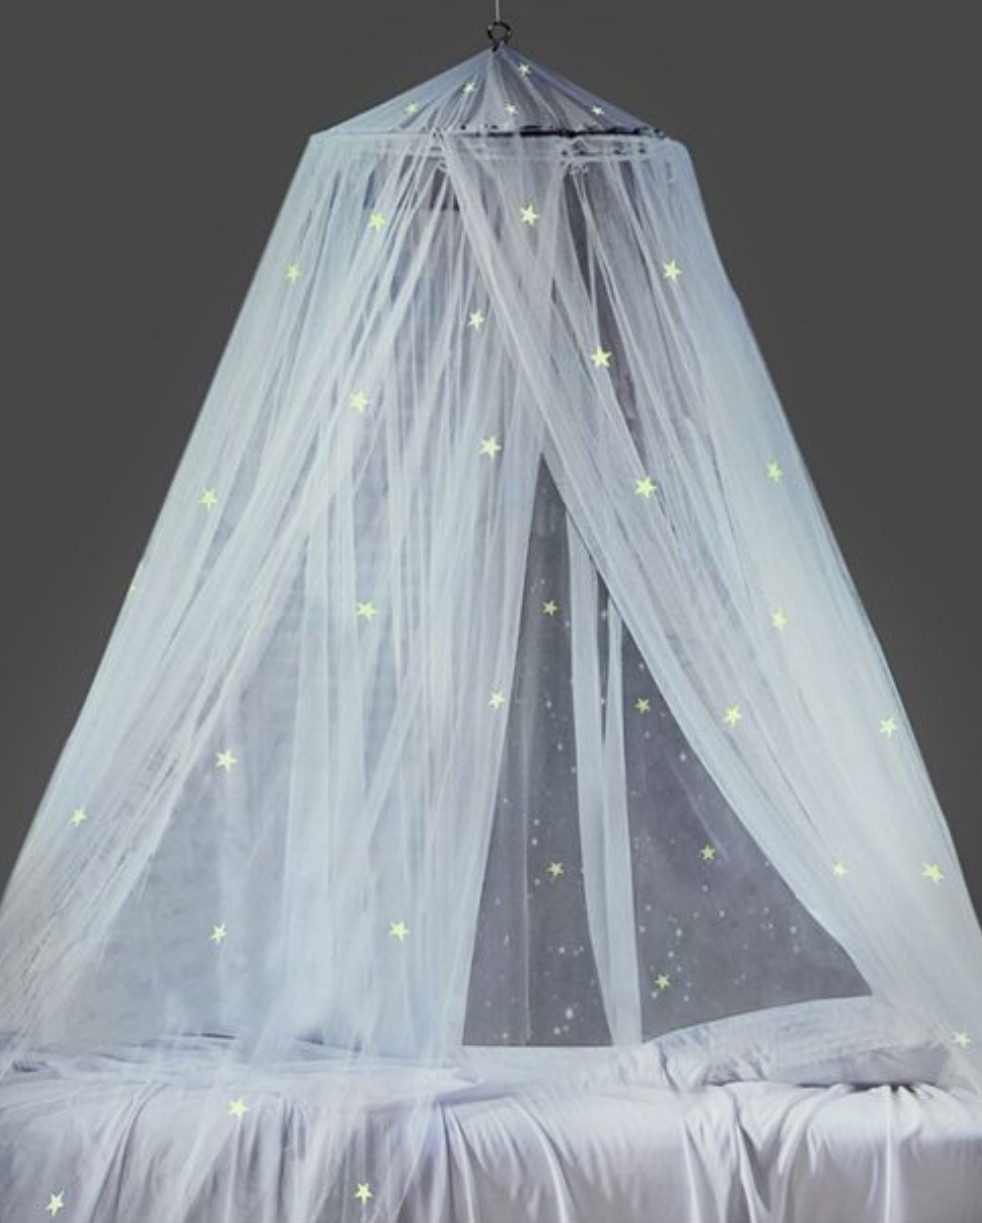 Bed canopy gift idea for foster or adopted child bedroom